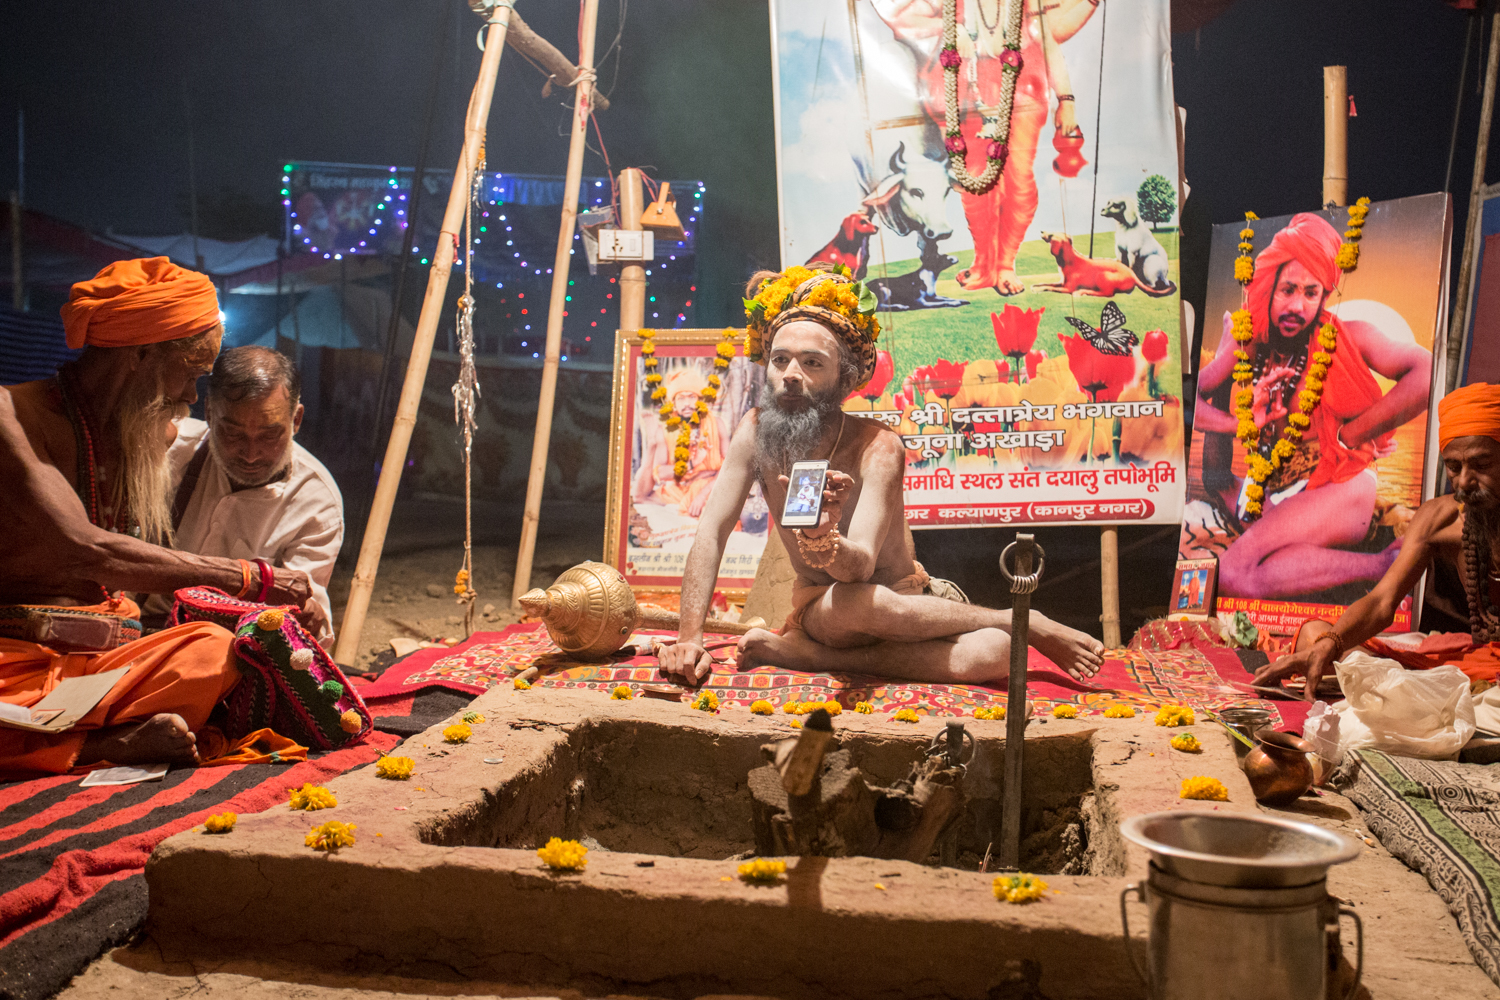 Sandhus traditionally take  sannyasa , a renunciation in which a person renounces worldly and materialistic pursuits and dedicate their lives to the attainment of freedom from  samsara  , the cycle of death and rebirth,by attaining enlightenment.But some Sandhus hold on to their data plan.